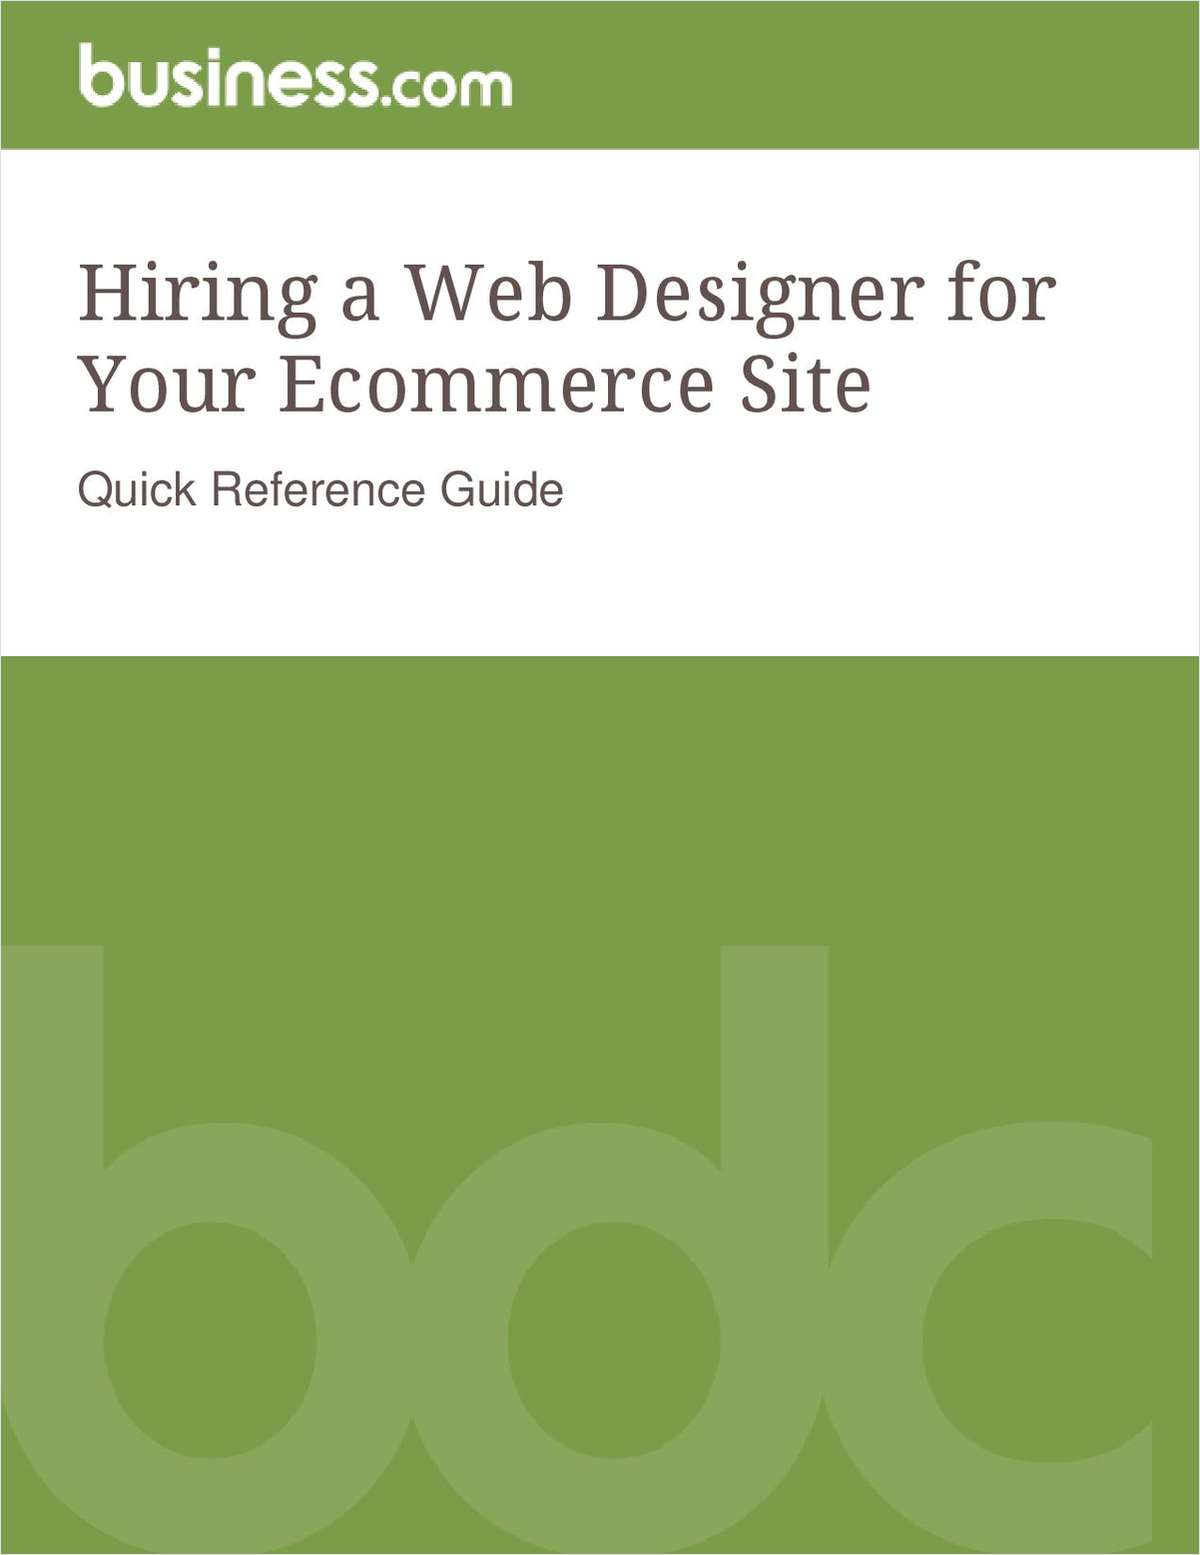 Hiring a Web Designer for Your Ecommerce Site